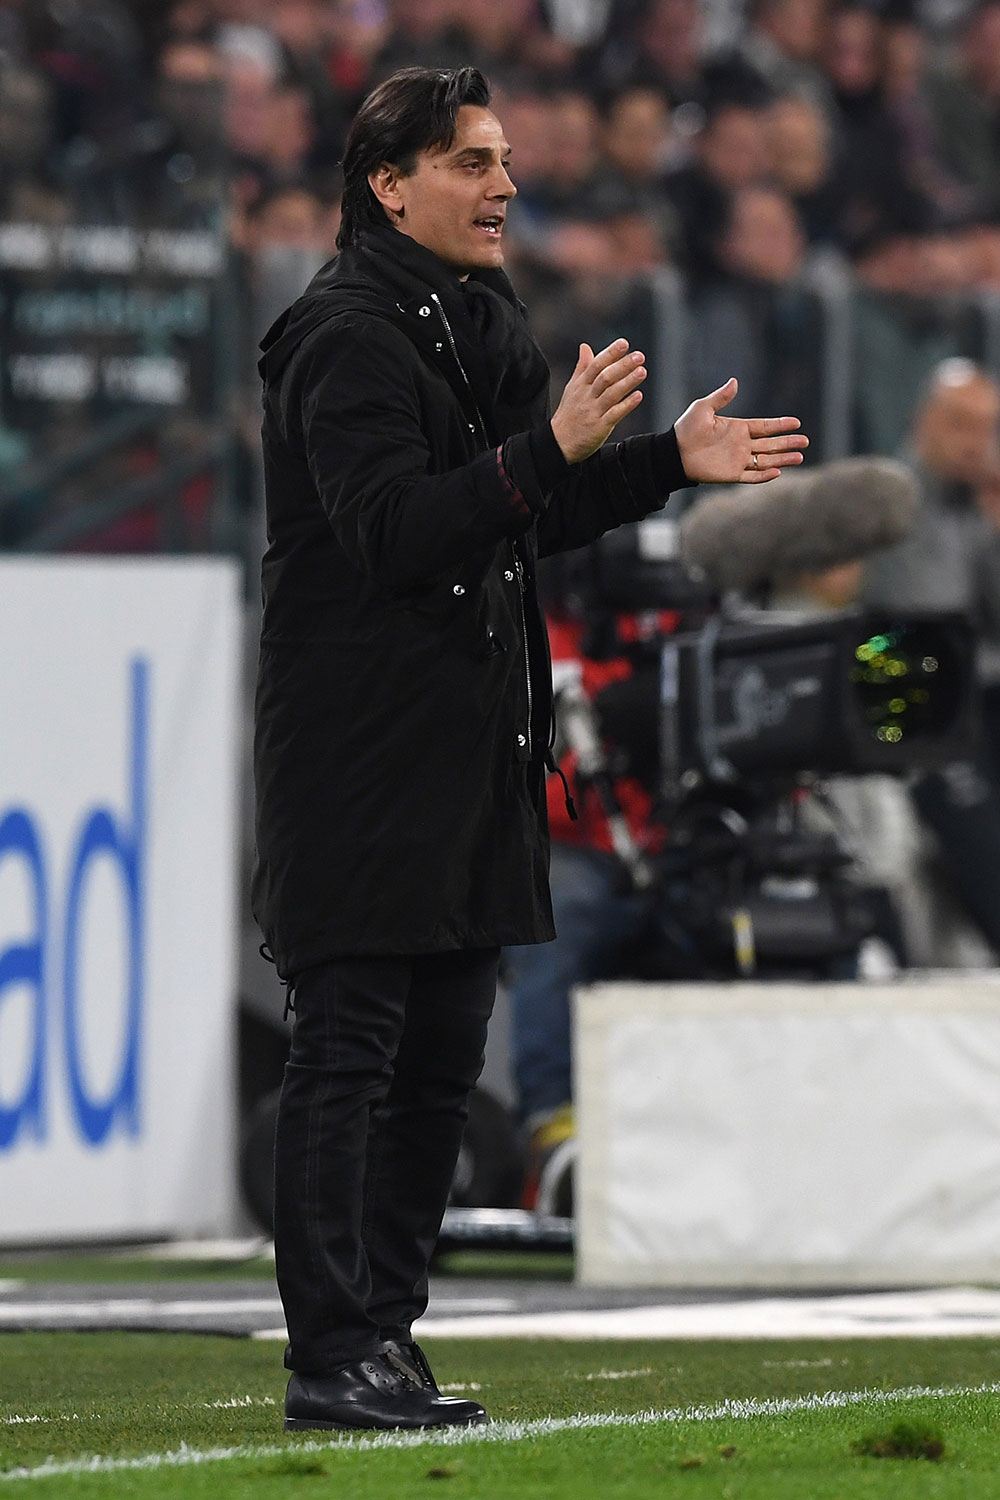 Vincenzo Montella during Juventus-Milan at the Juventus Stadium on the 10th of March 2017. (Photo by Valerio Pennicino/Getty Images)